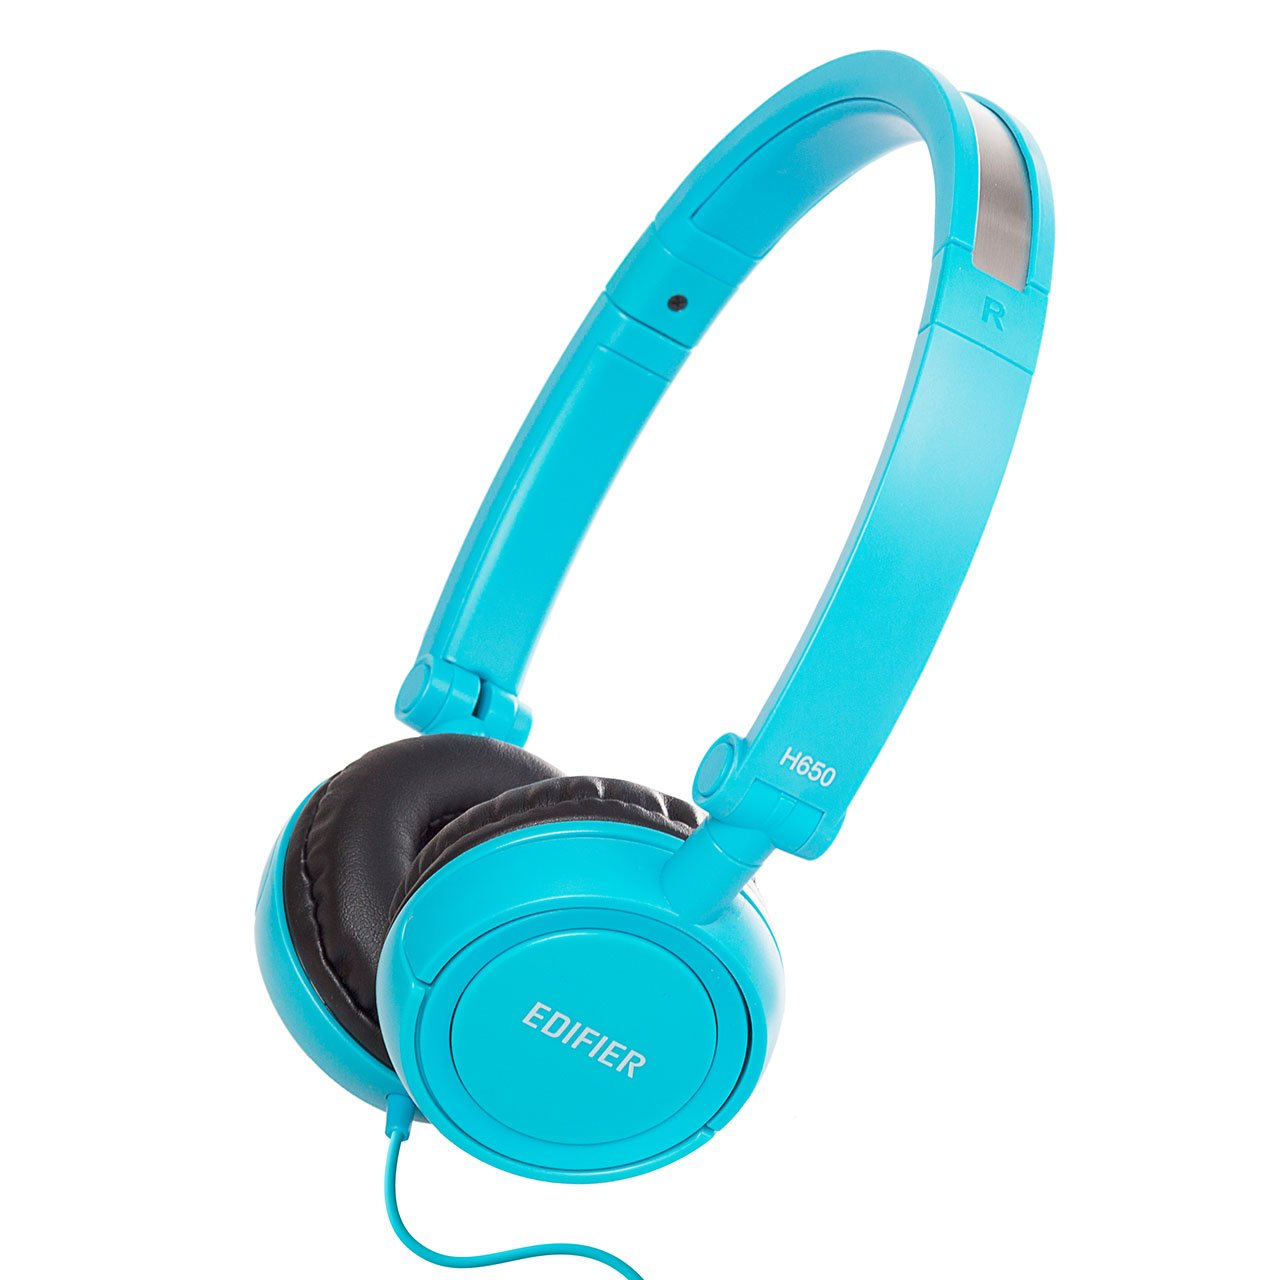 Edifier H650 Headphones - Hi-Fi On-Ear Foldable Noise-Isolating Stereo Headphone, Ultralight and Tri-fold Portable - Blue